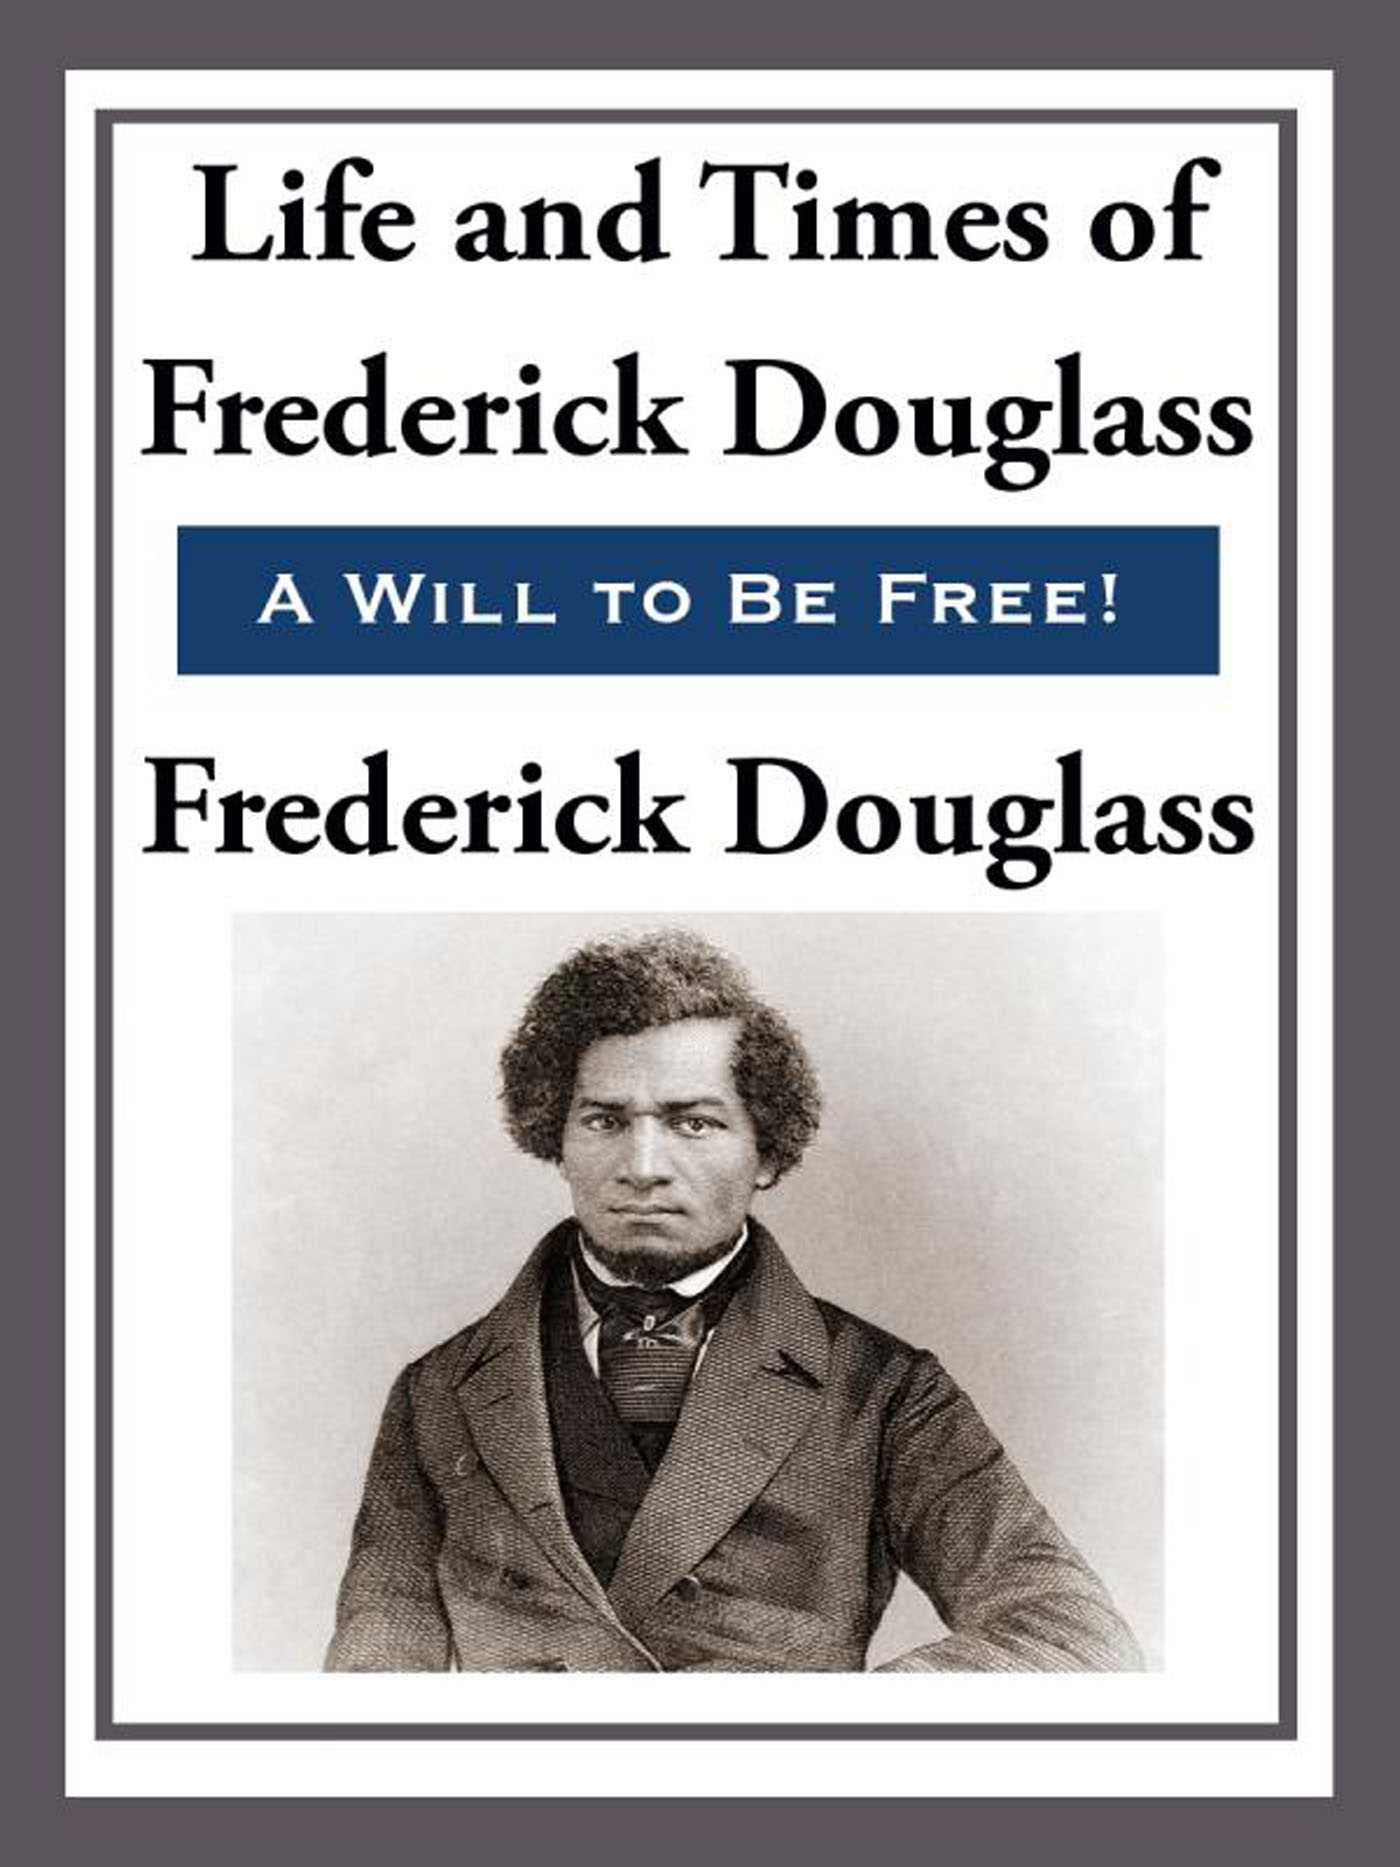 the life and times of frederick douglas ebook by frederick